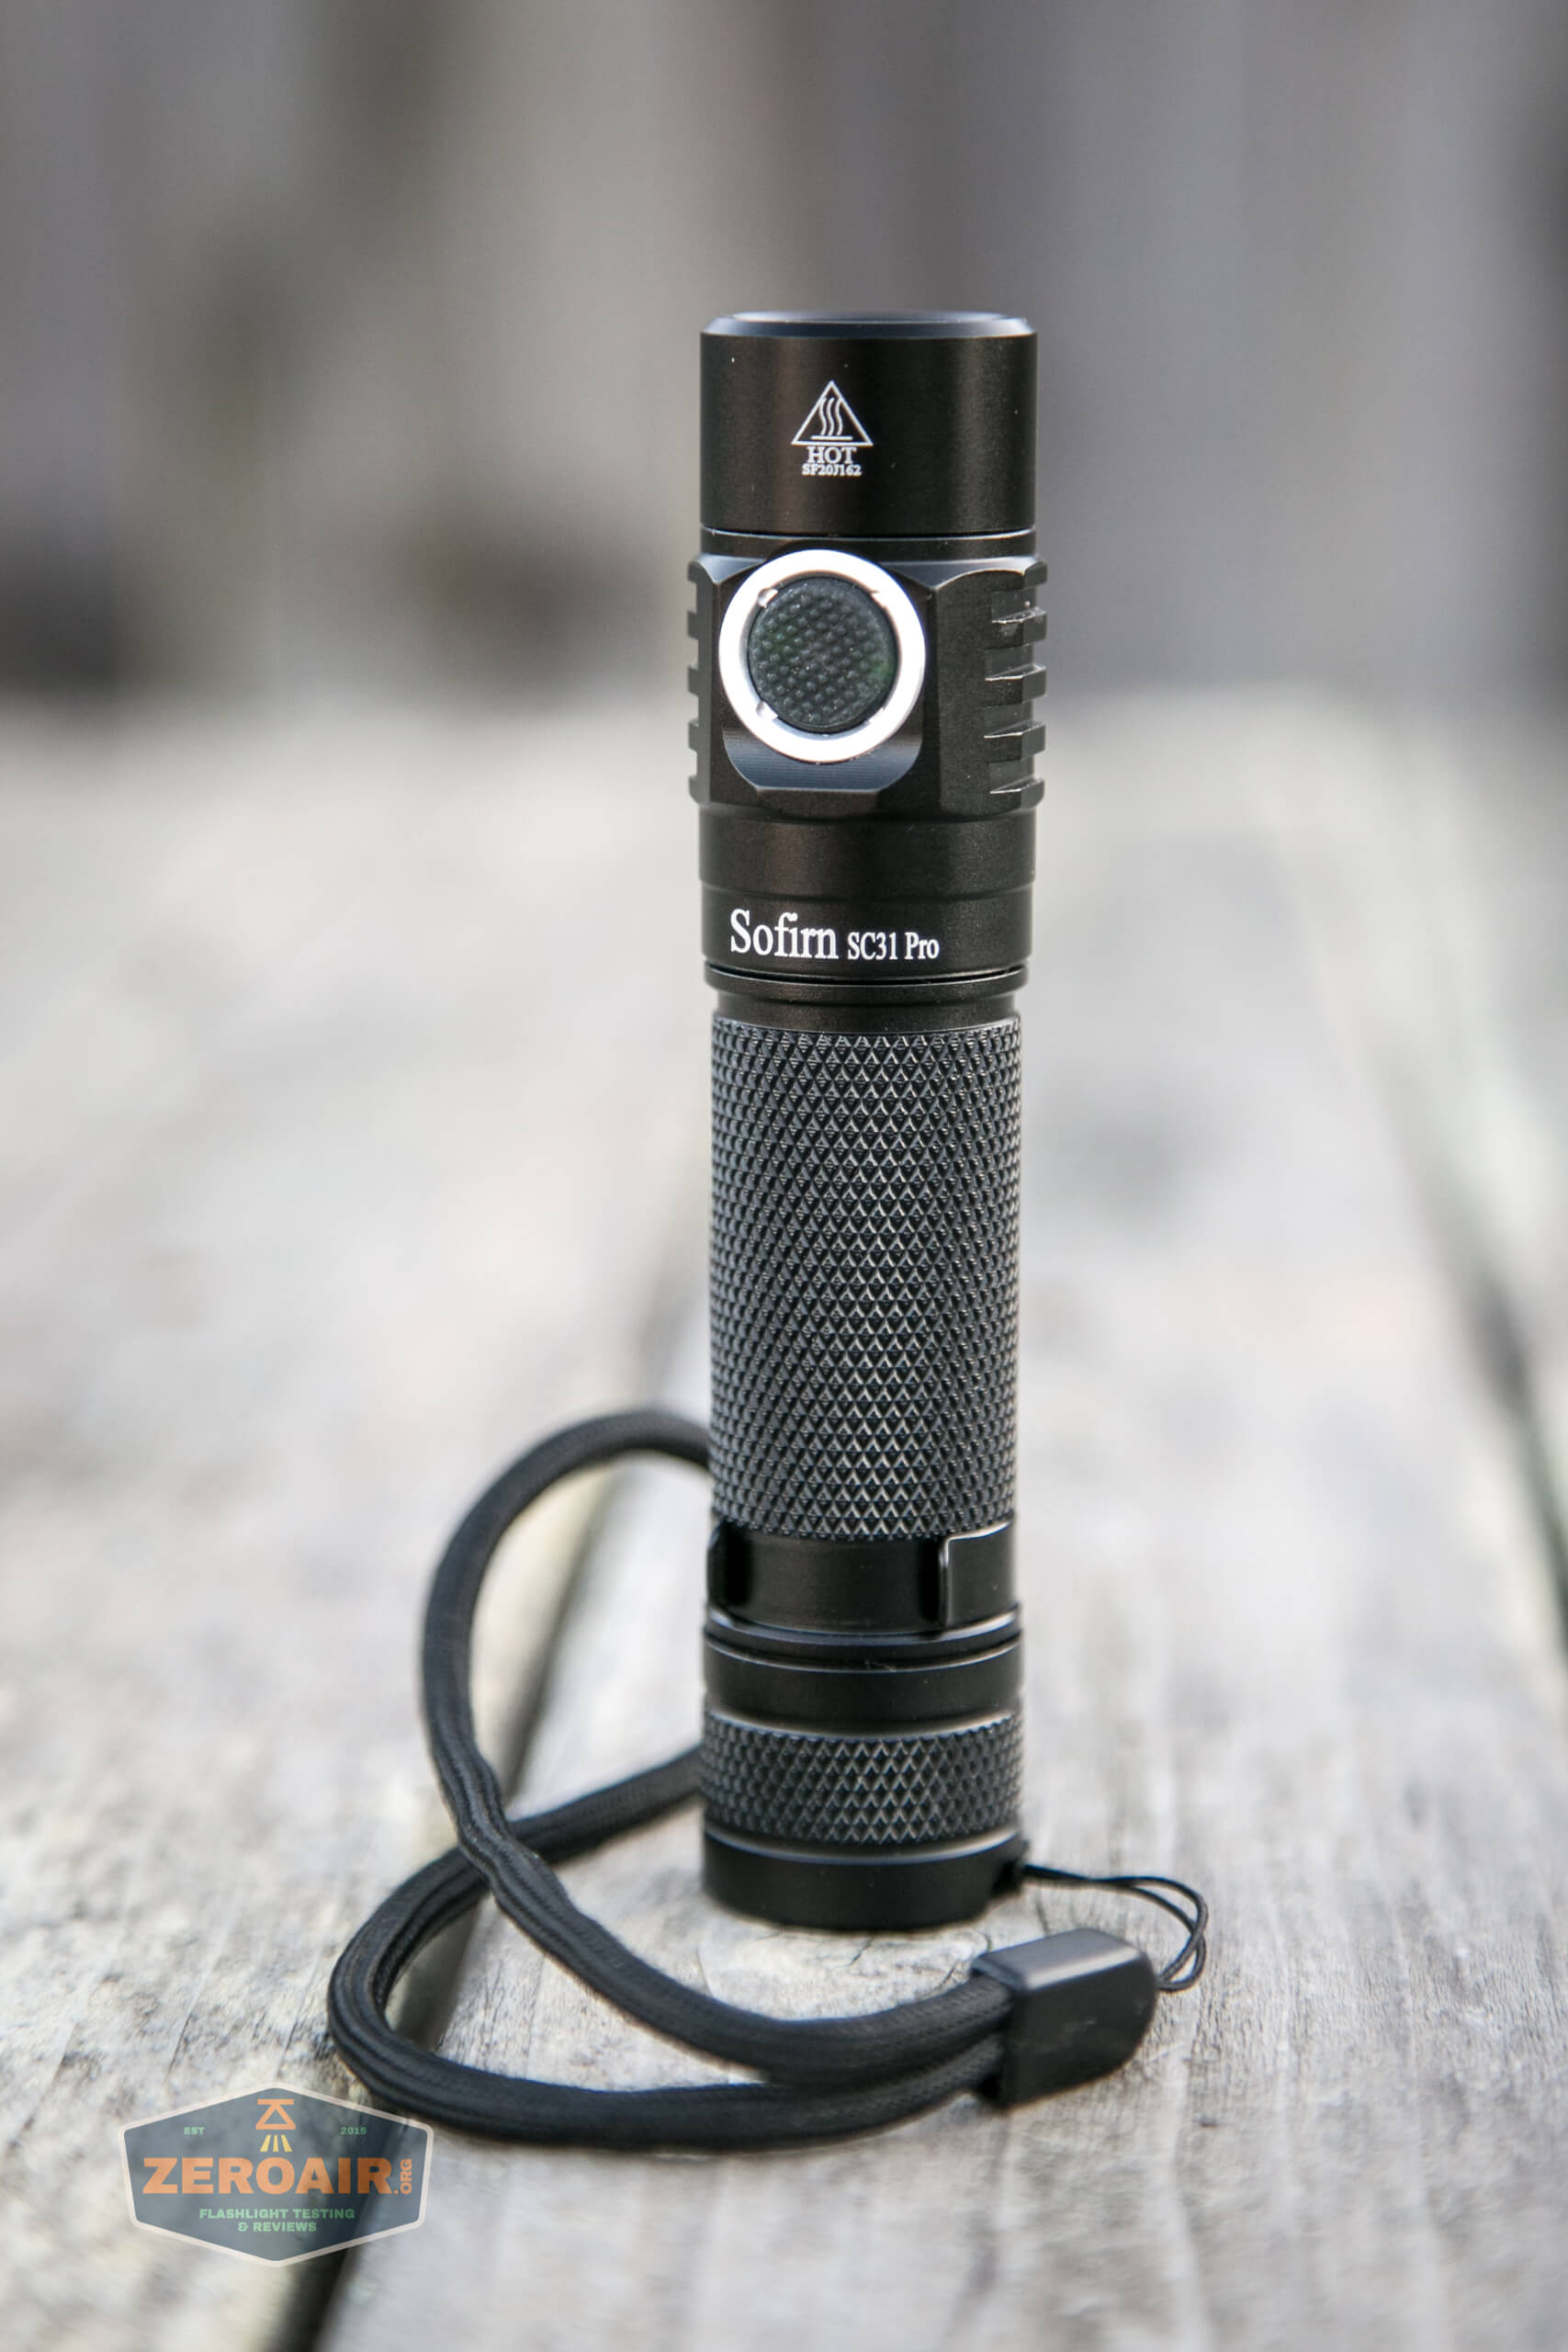 sofirn sc31 pro Andúril 18650 flashlight lanyard installed